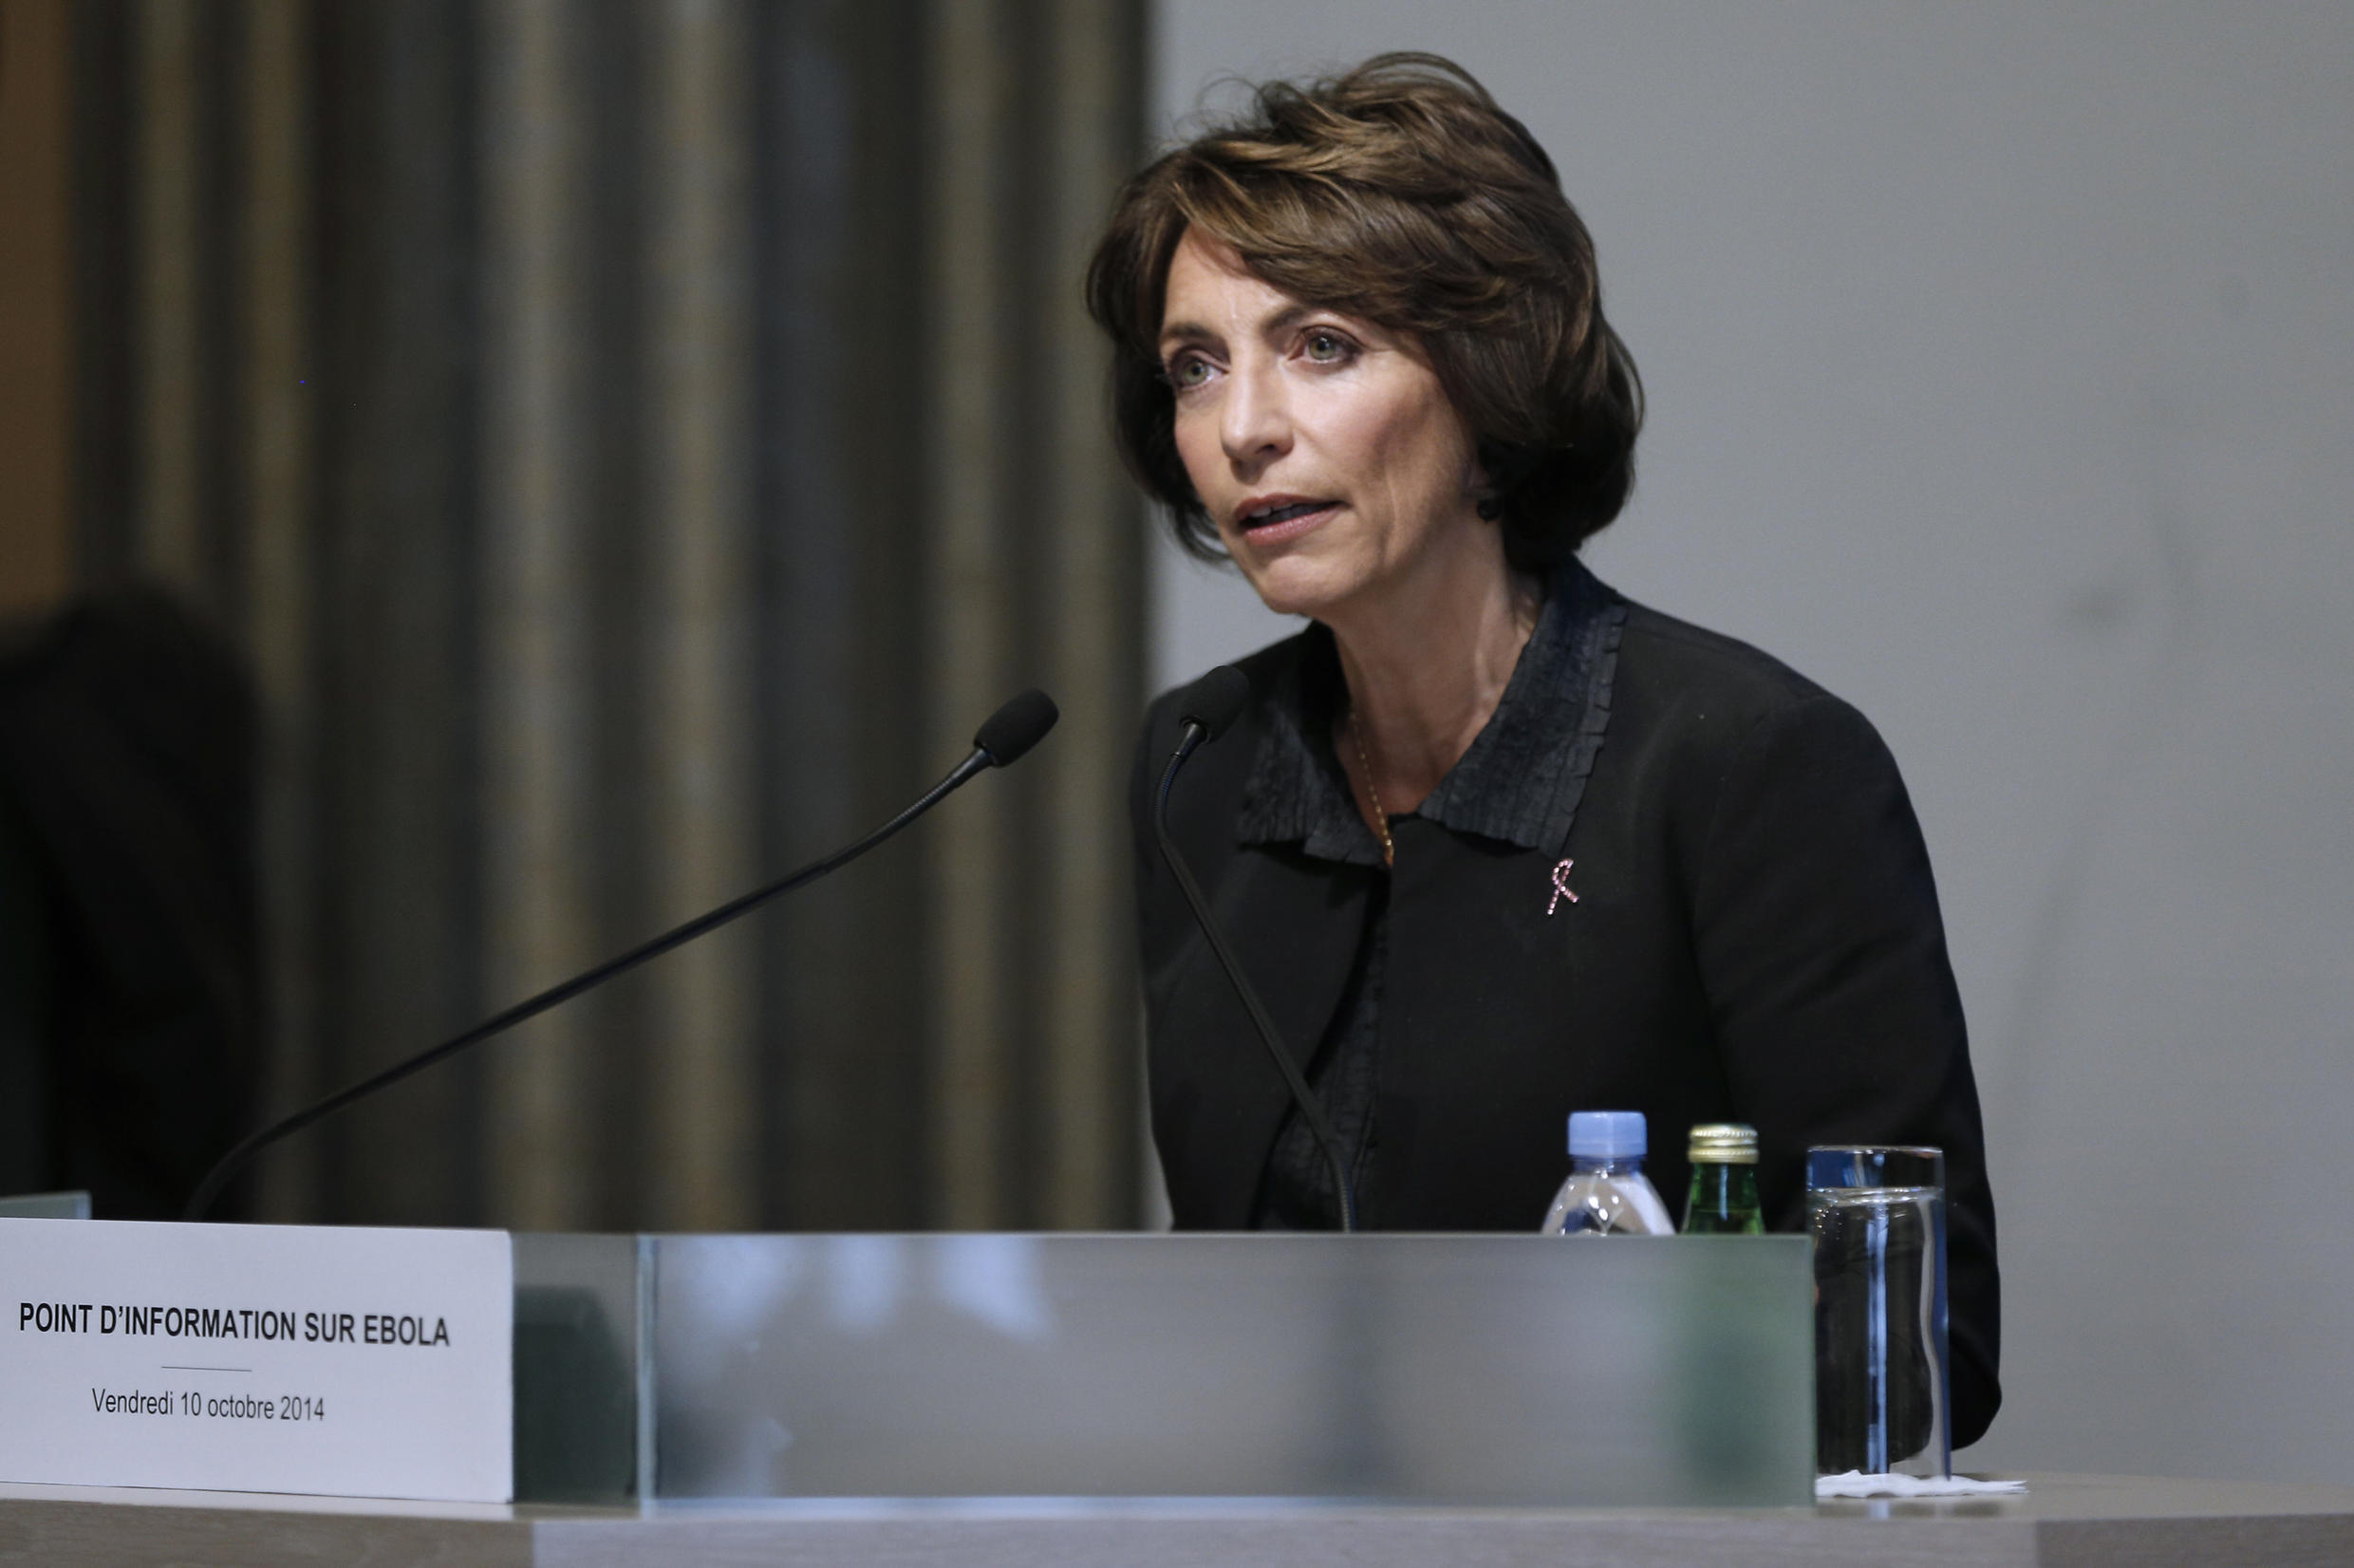 Health Minister Marisol Touraineat her press conference about Ebola on Friday